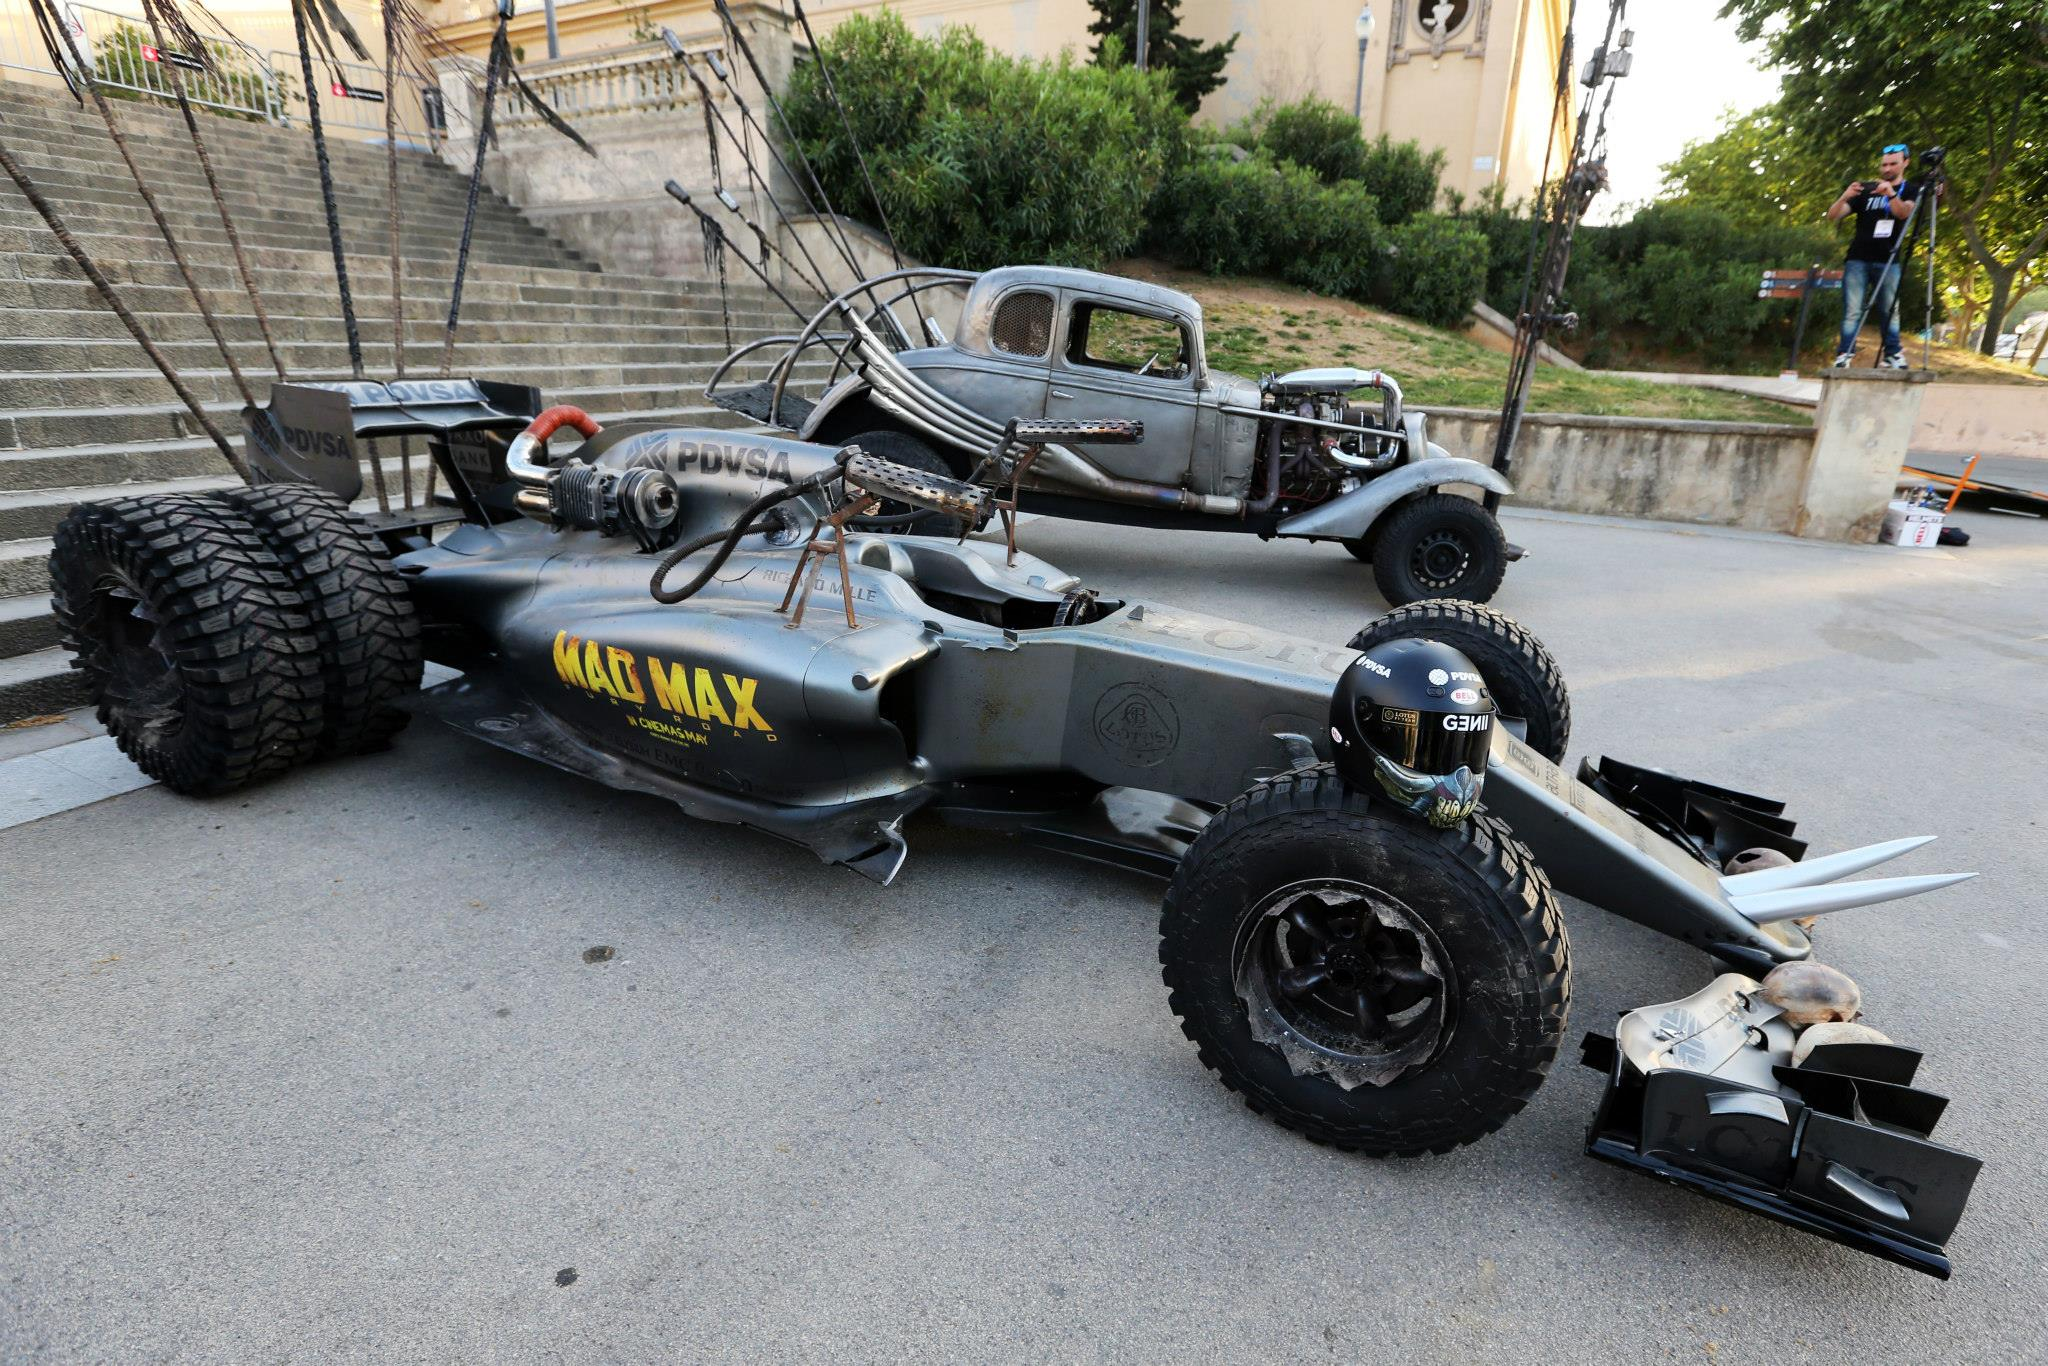 Lotus F1 Team Creates Awesome Mad Max Homage F1 Car